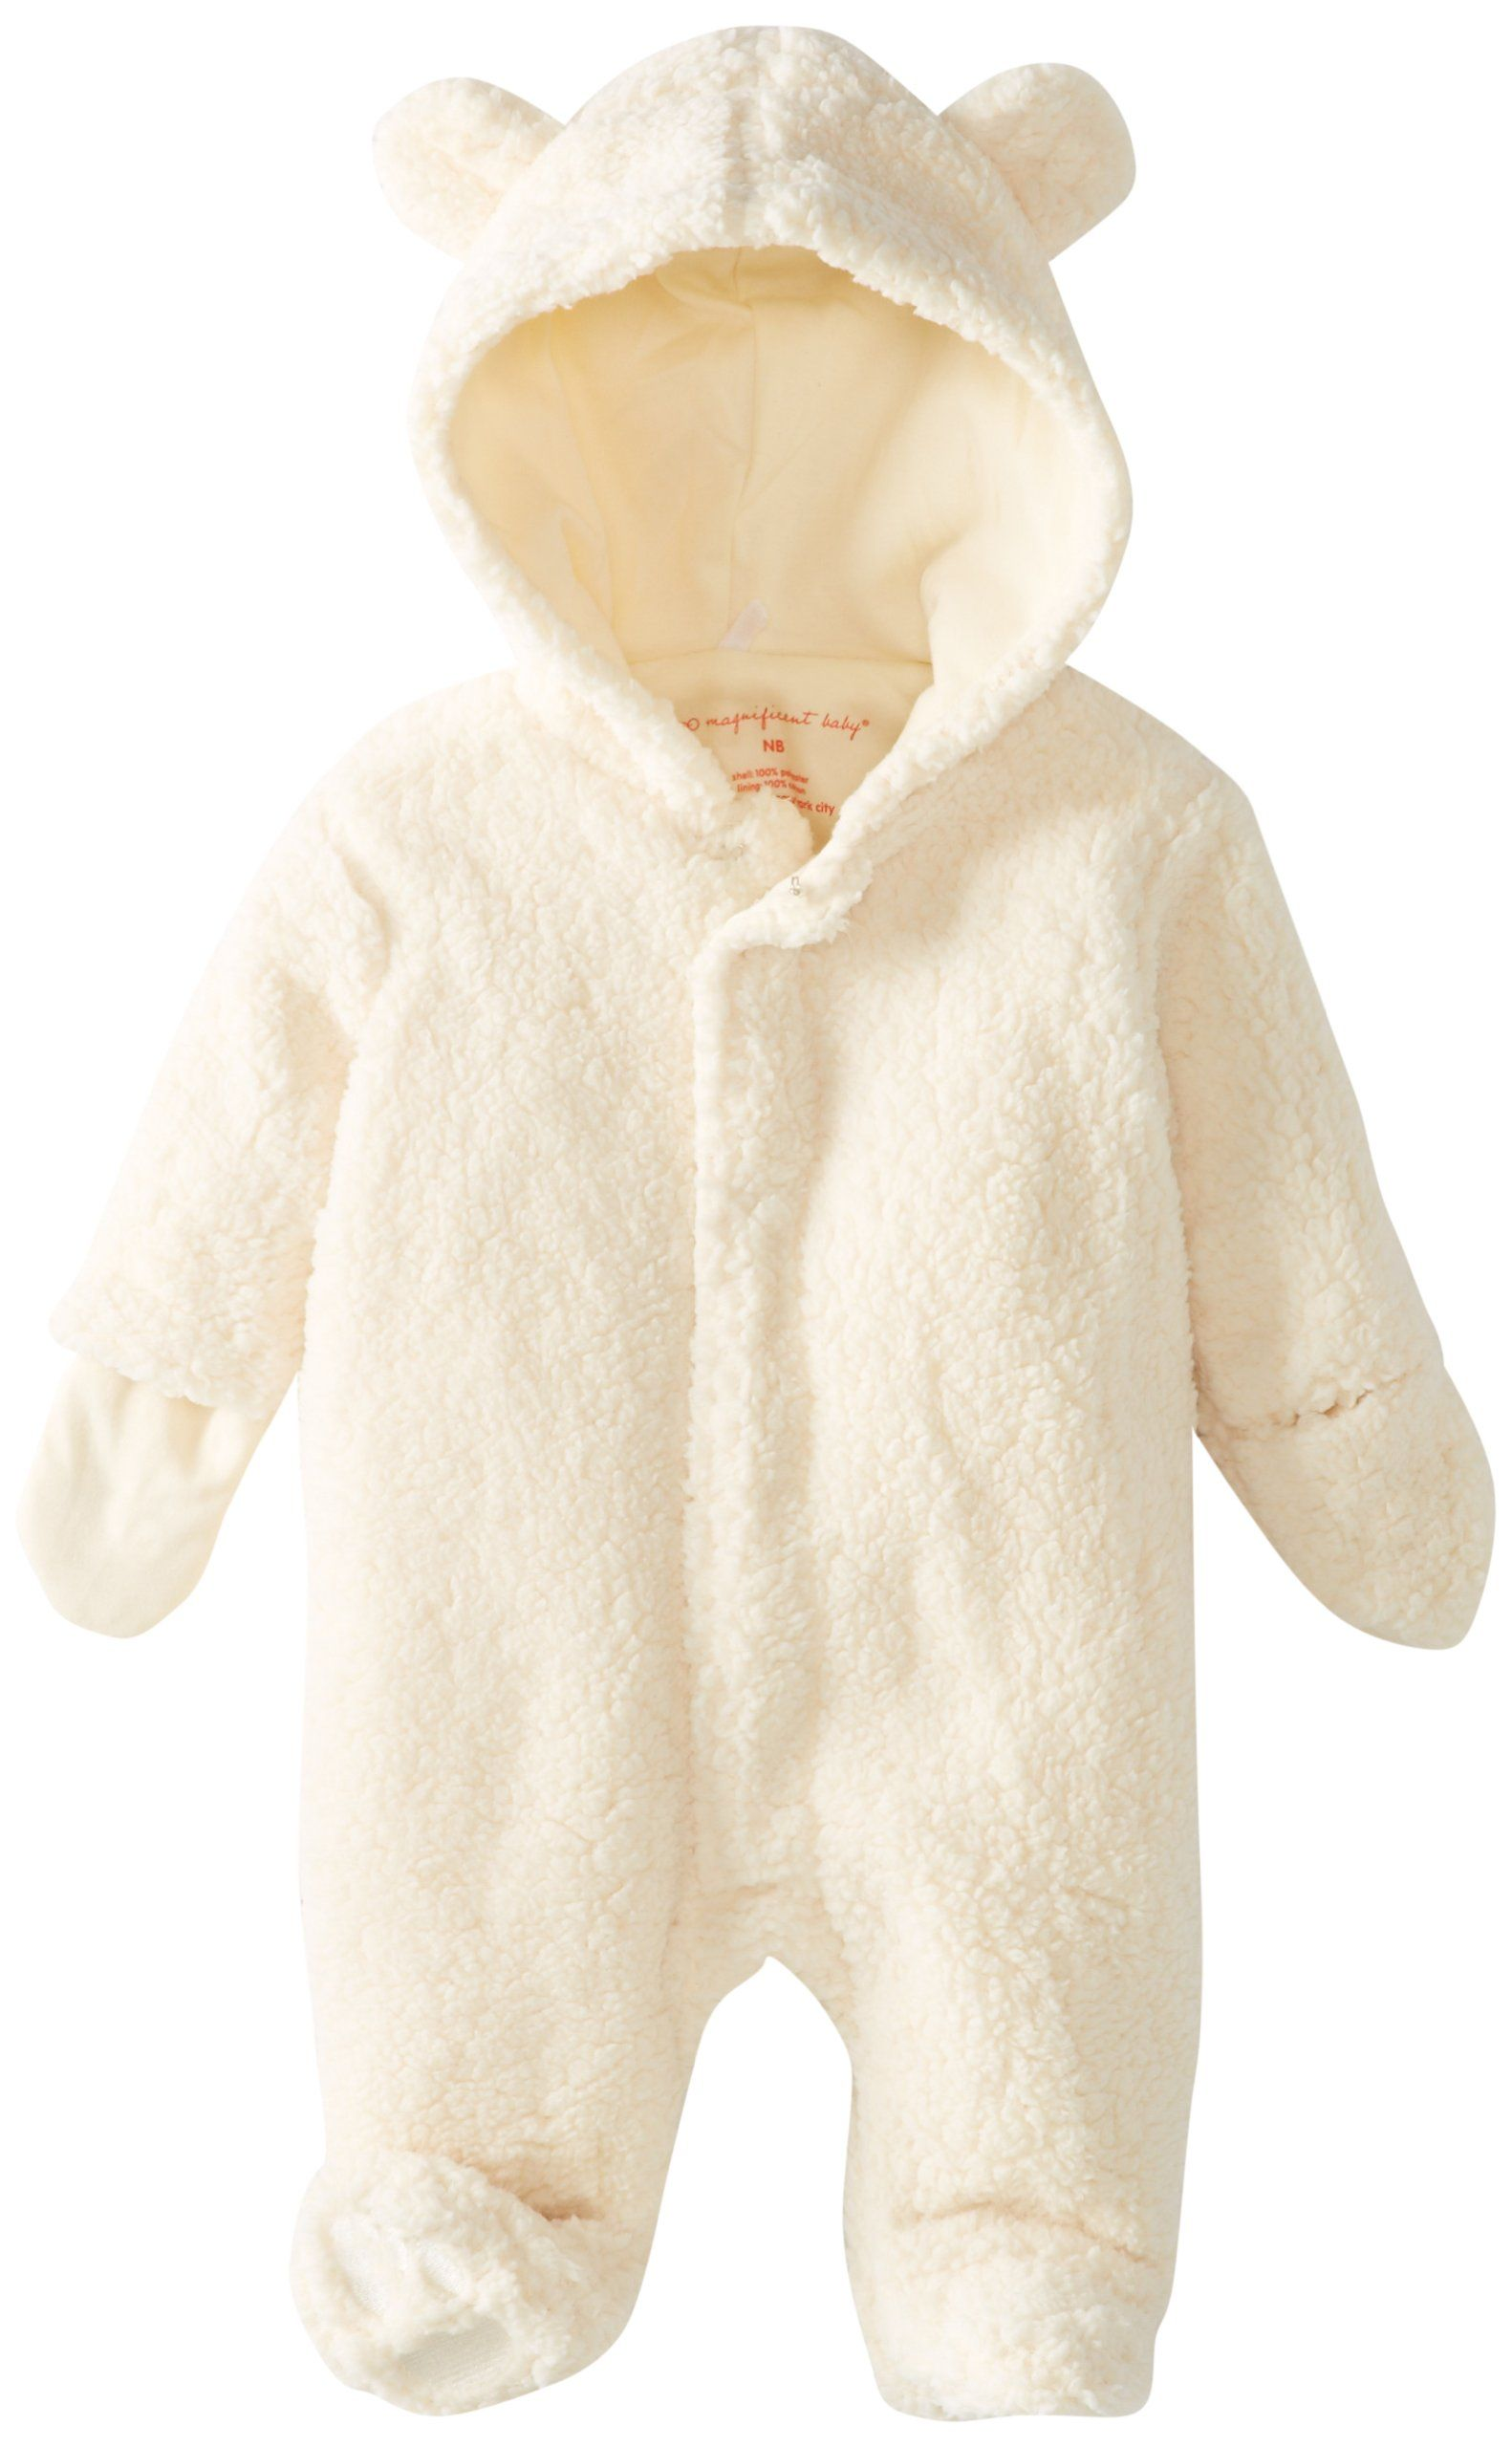 Magnificent Baby Unisex-Baby Infant Hooded Bear Pram ...